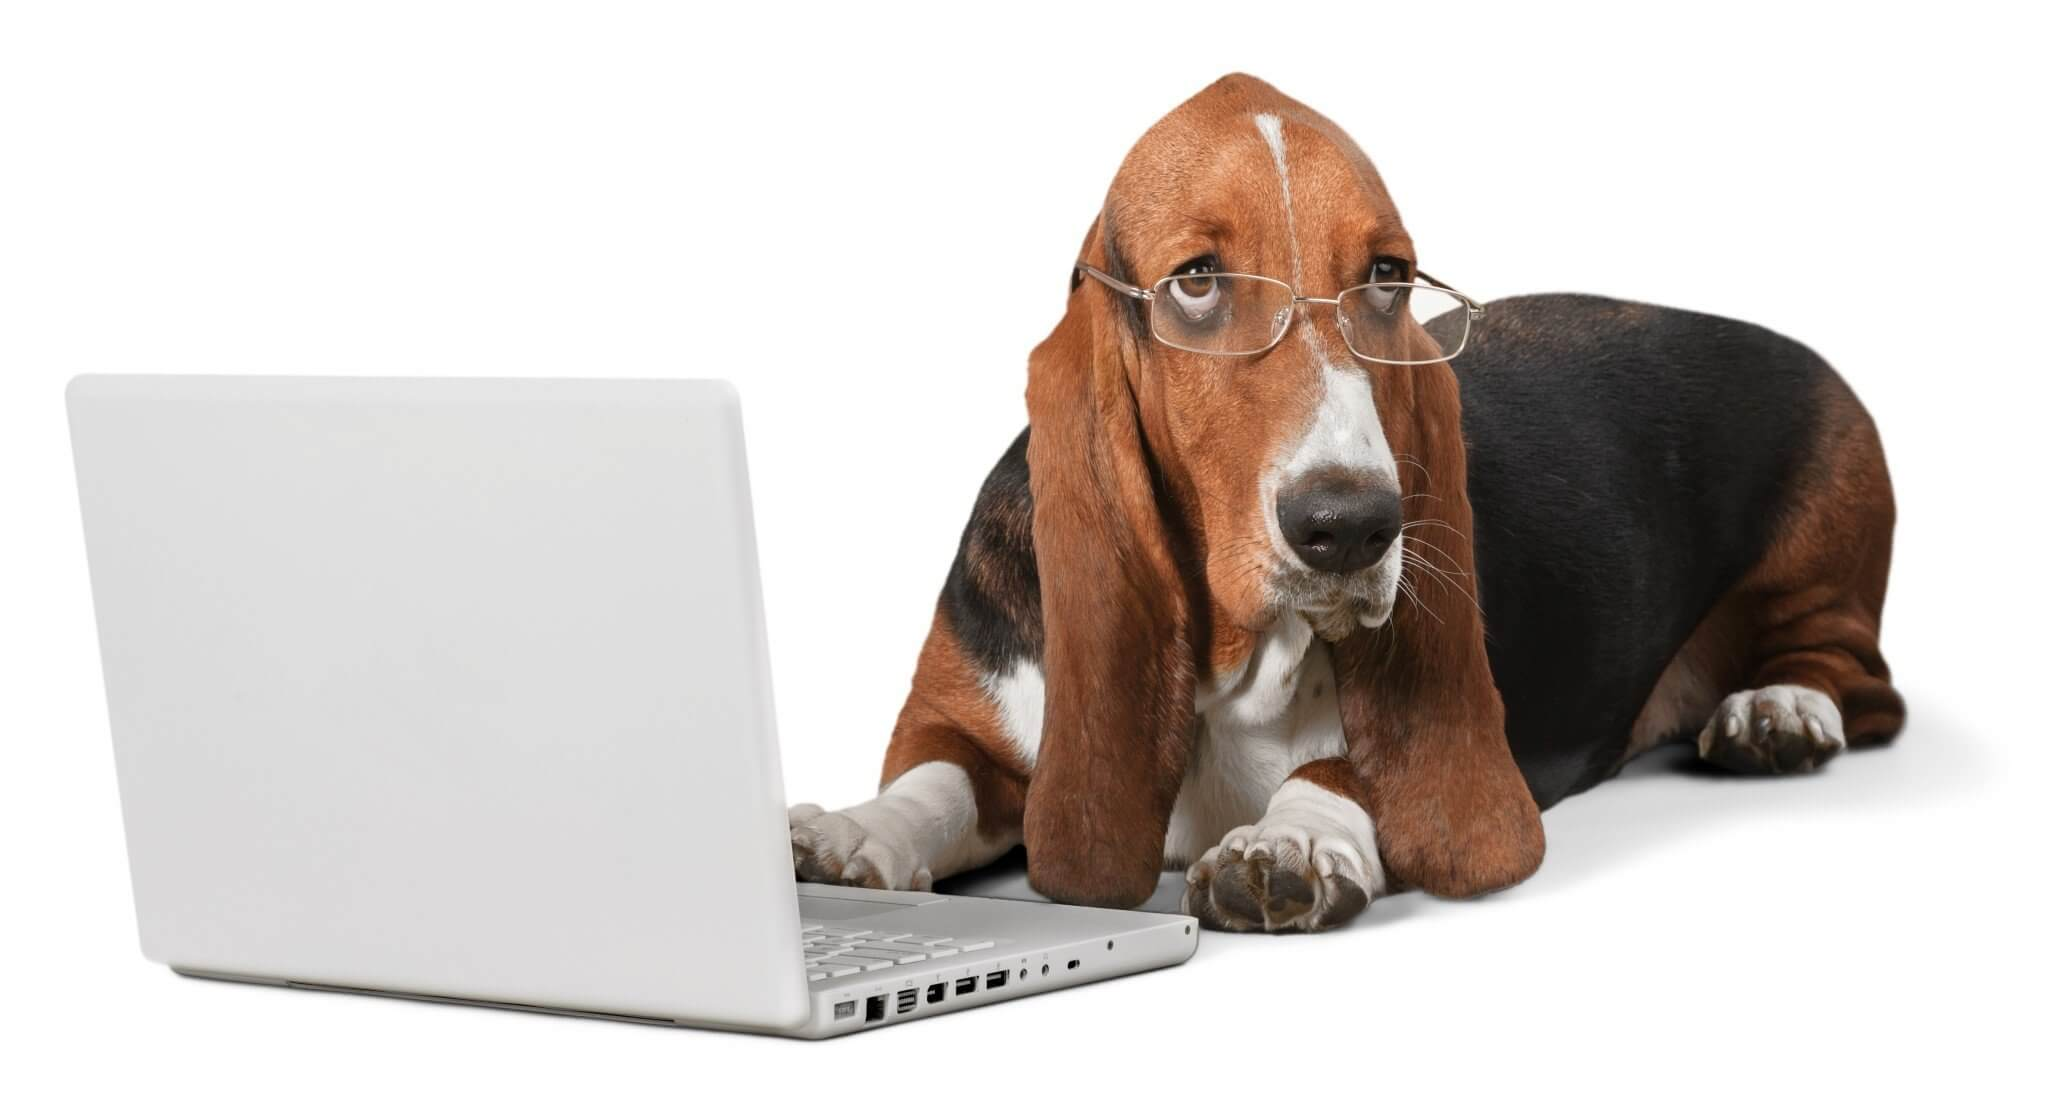 OfficeHound with laptop working on white label social media